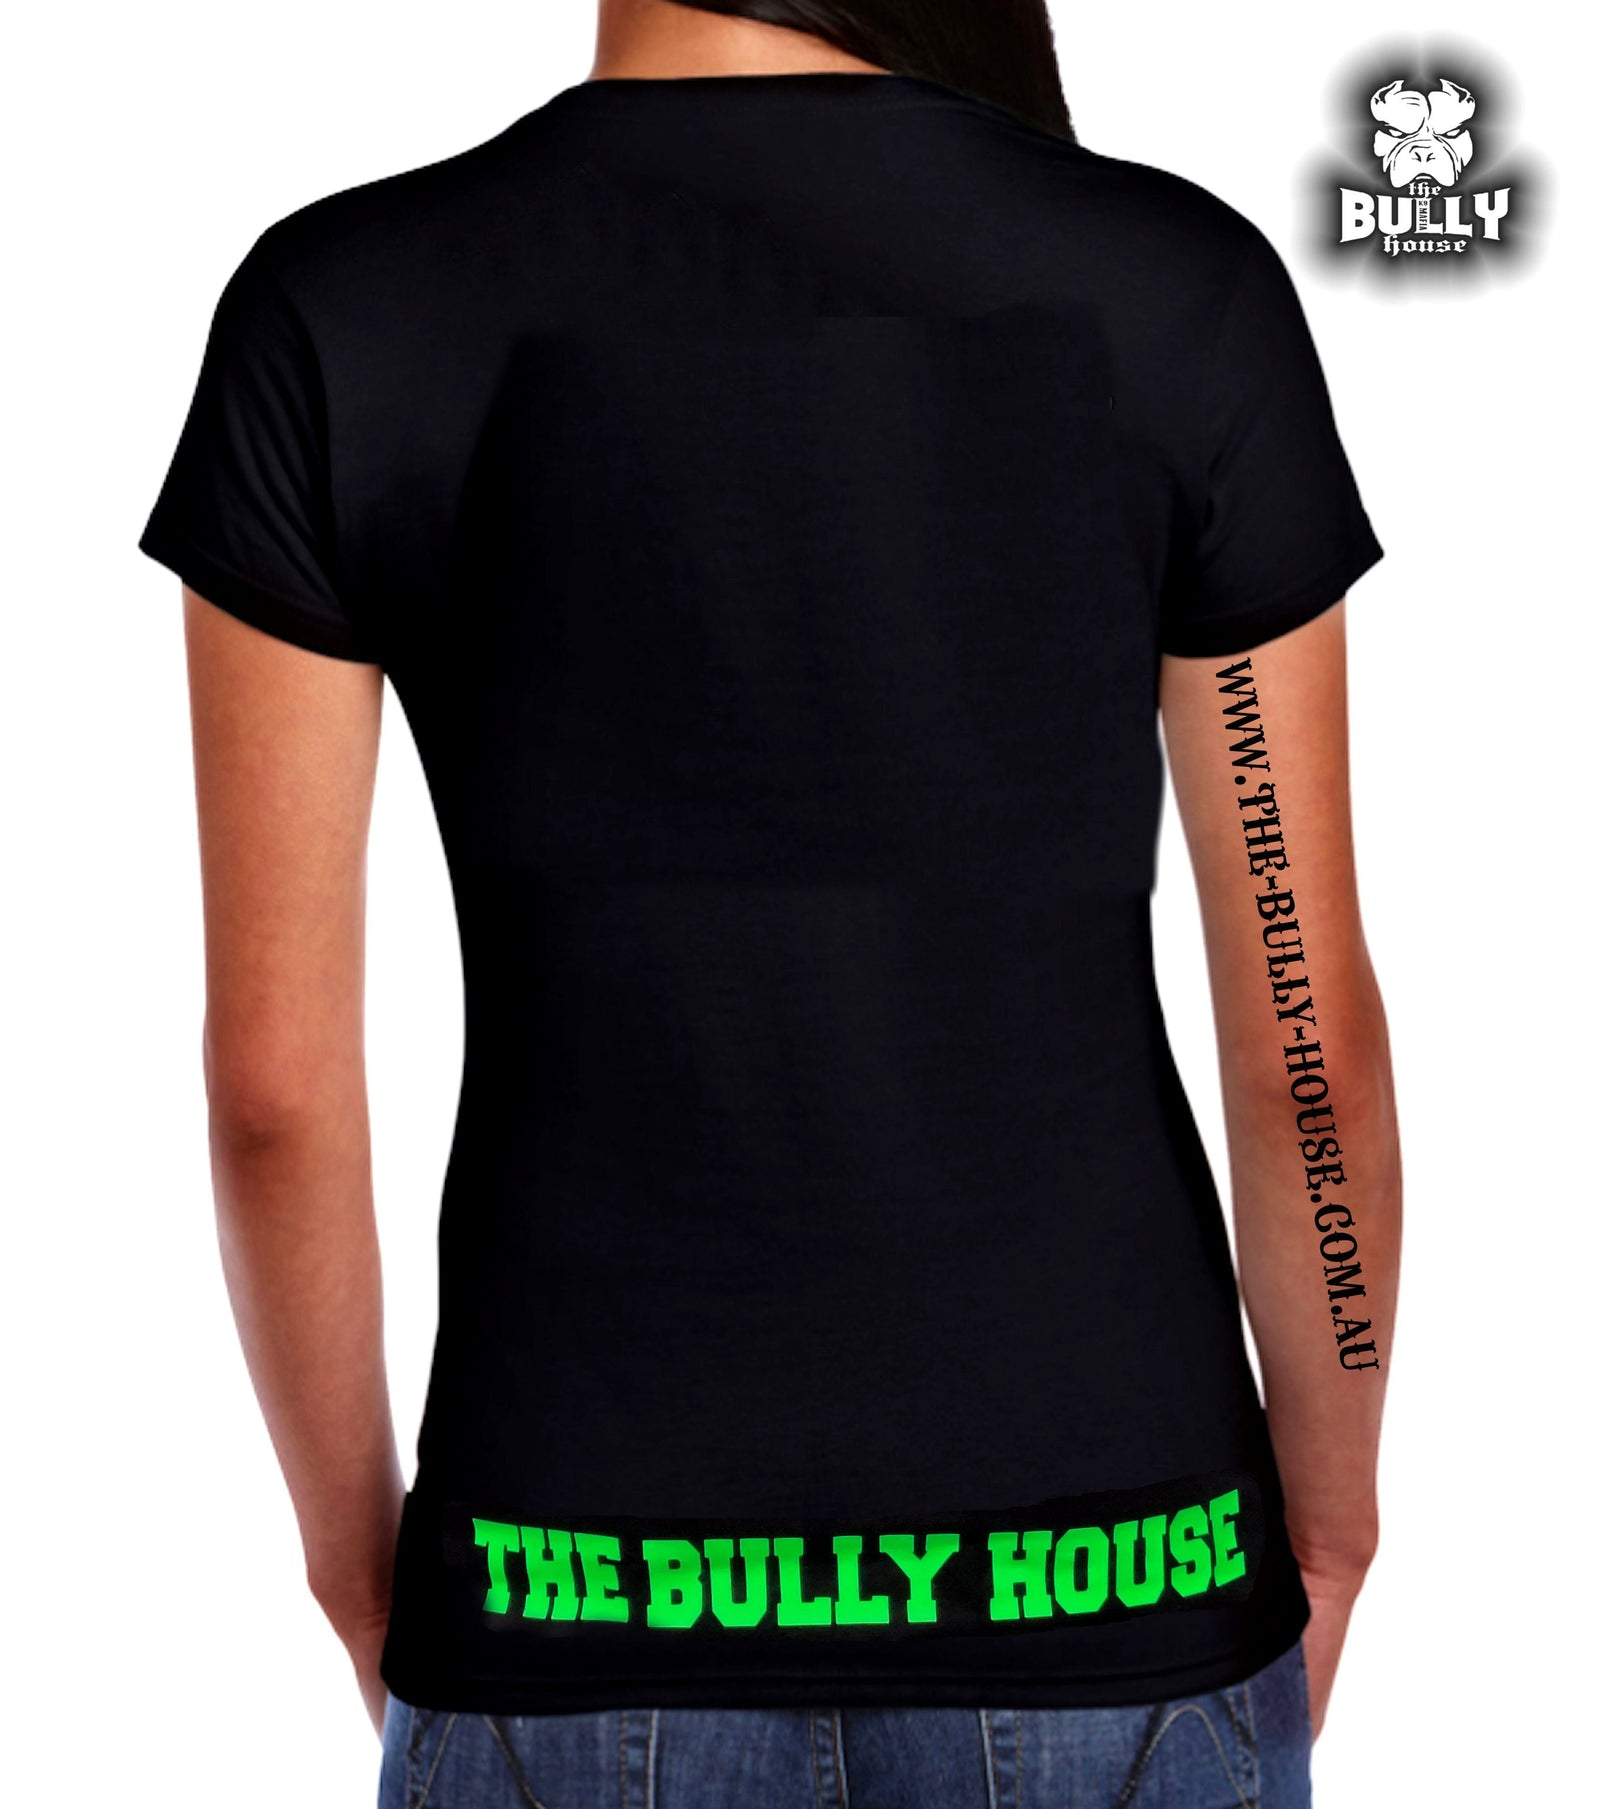 The Bully House - Womens T-SHIRT - FLURO GREEN Print